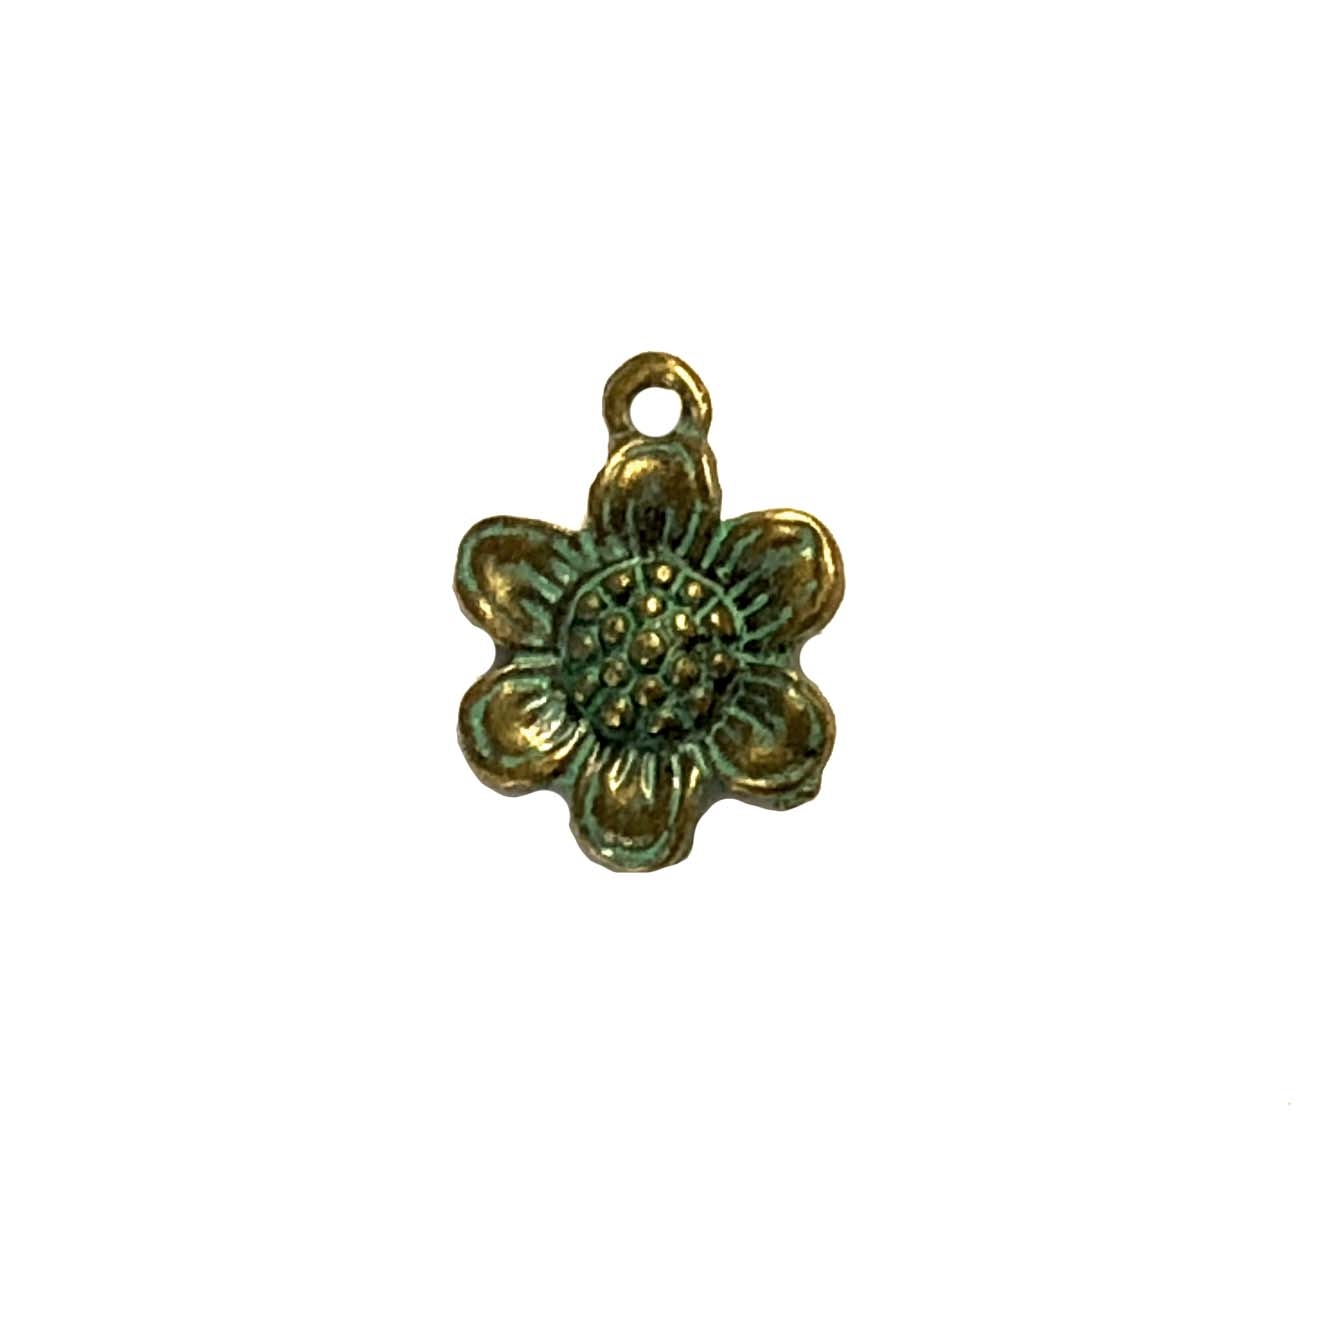 brass charms, sunflowers, daisies, antique bronze patina, 08239, B'sue Boutiques, nickel free jewelry supplies, US made jewelry supplies, vintage jewellery supplies, flower charms, daisy charms